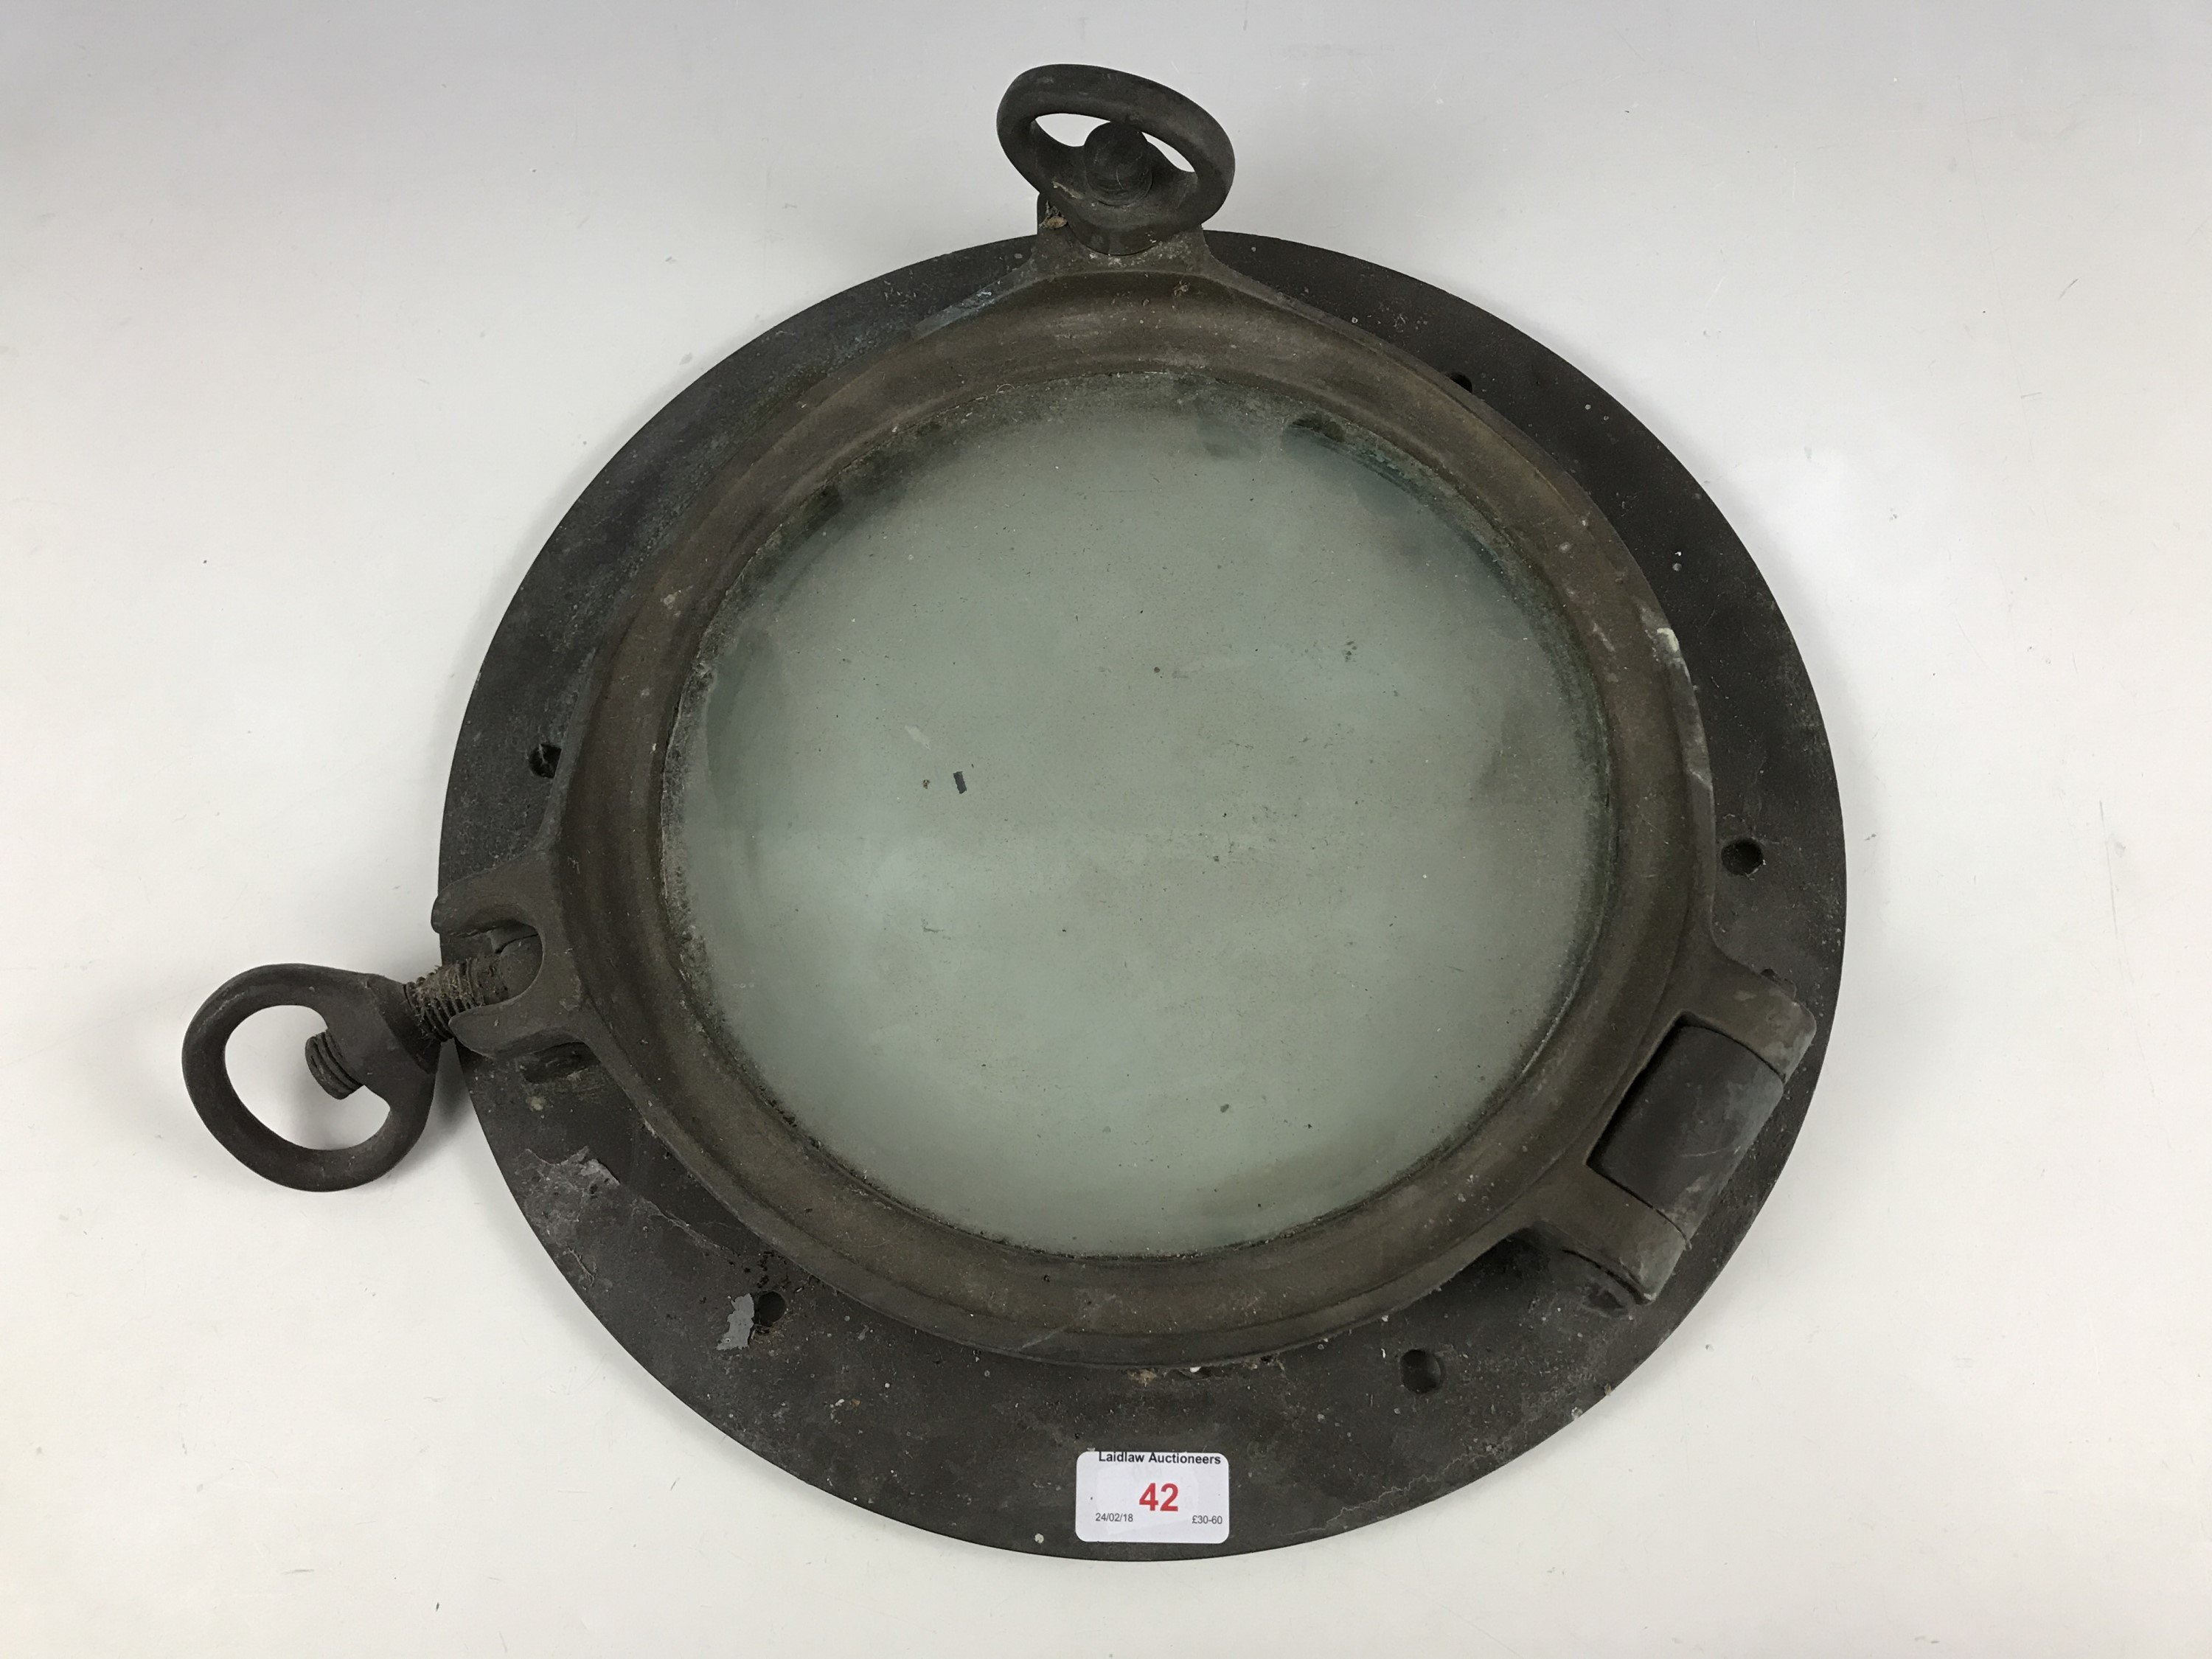 Lot 42 - A 20th Century ships brass porthole, 40 cm diameter